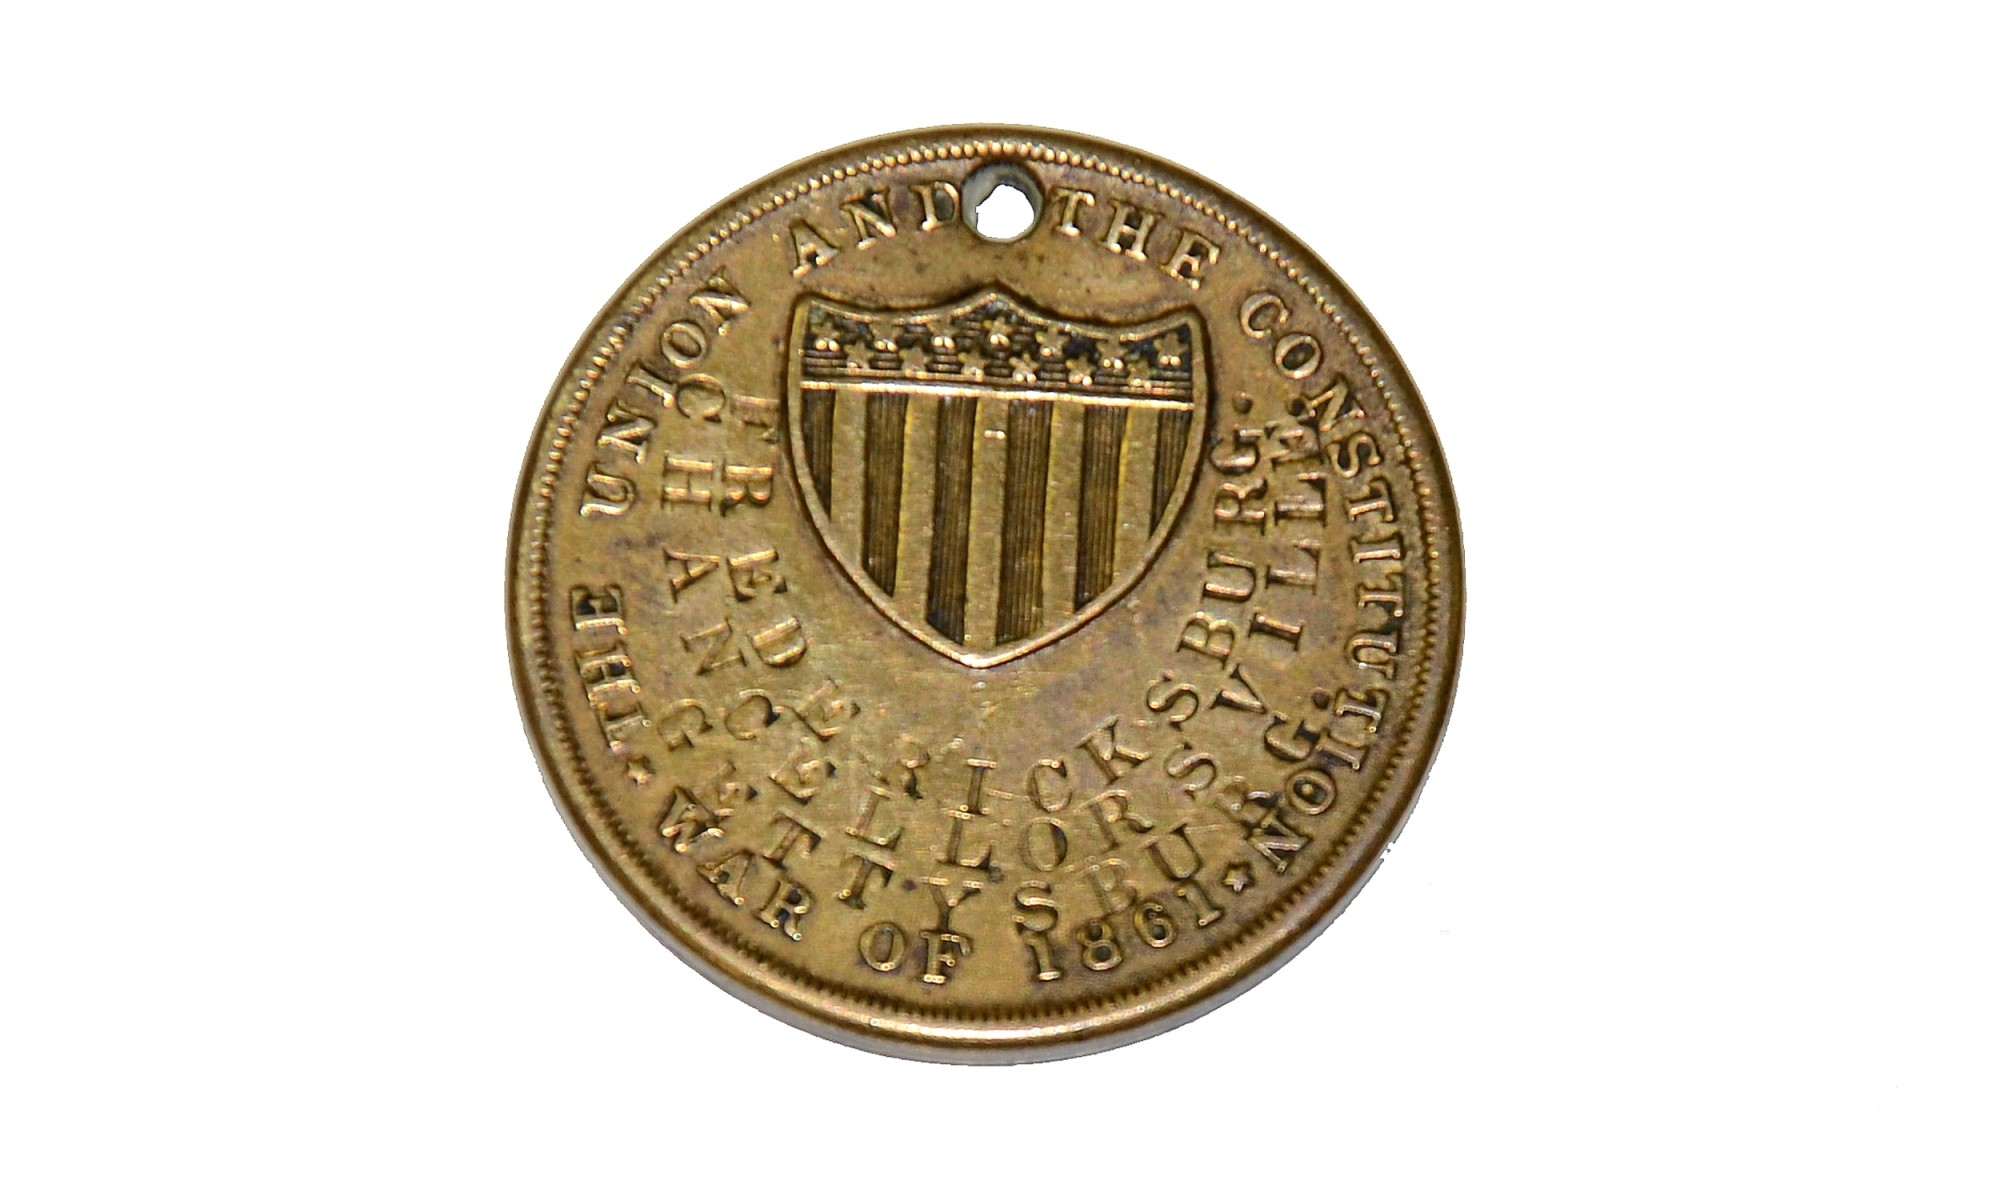 IDENTIFICATION DISK/DOGTAG WHICH BELONGED TO PRIVATE THEODORE FACER OF CO. G, 14TH U.S. INFANTRY